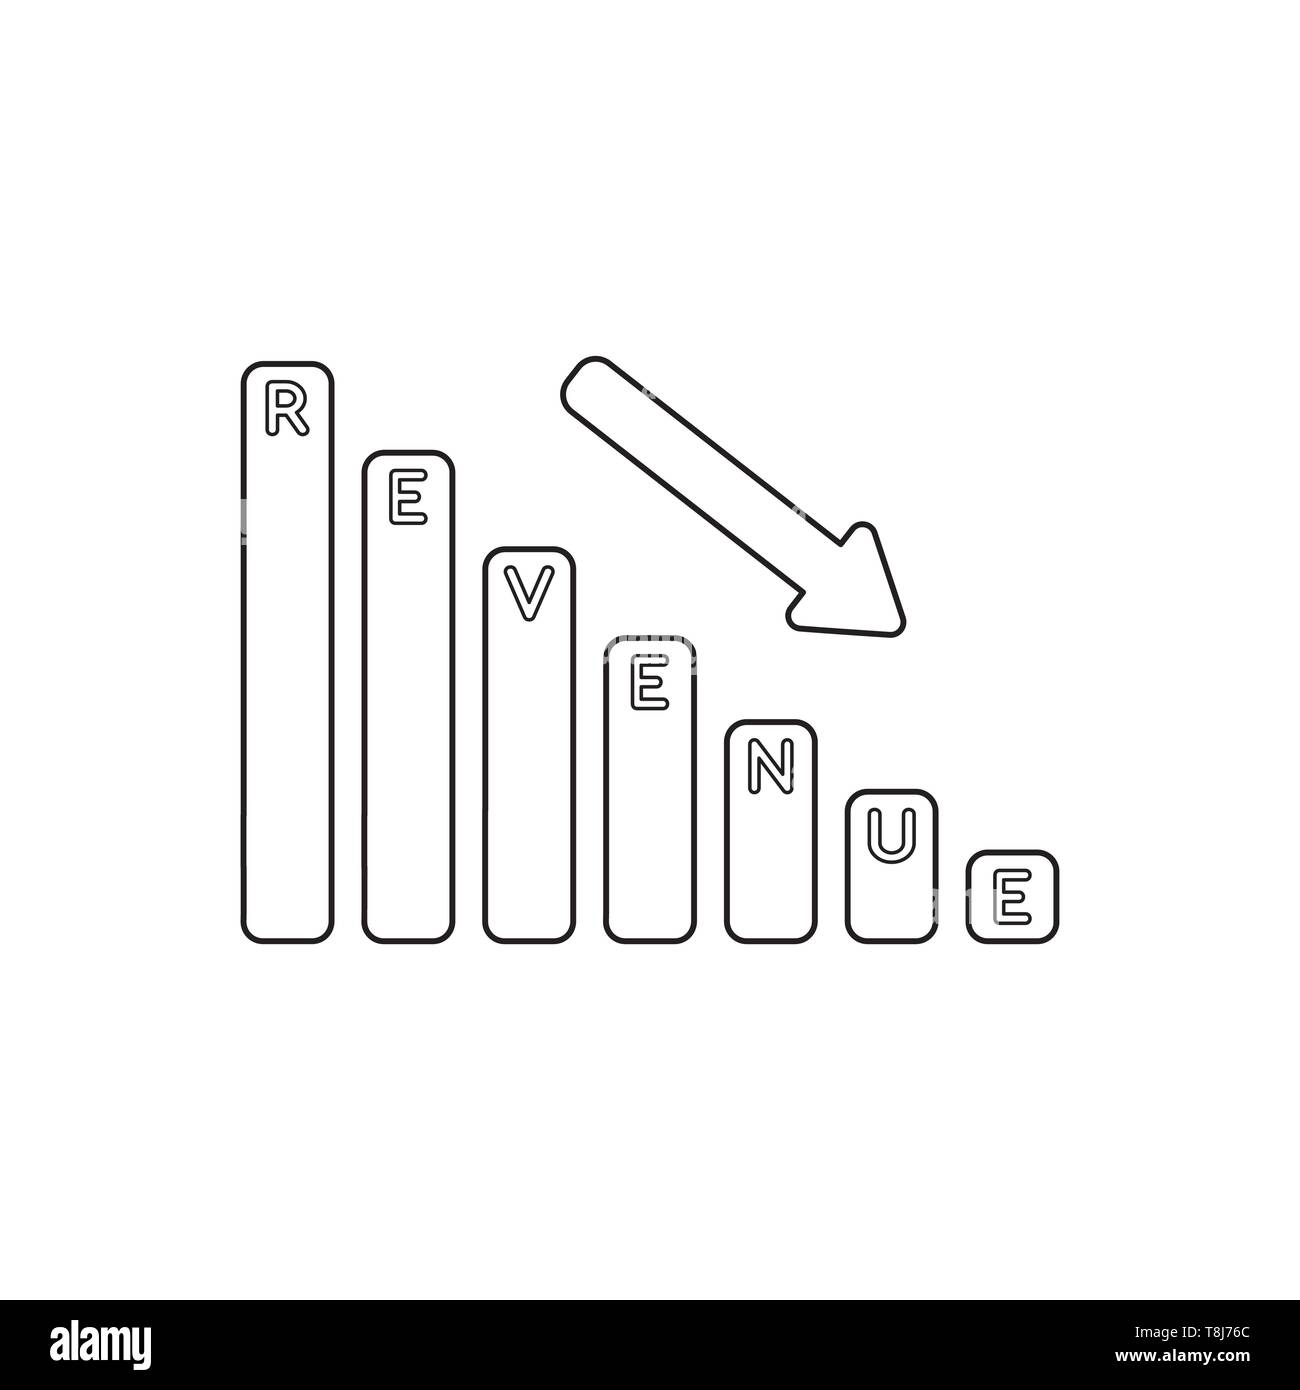 Vector icon concept of revenue sales bar graph down. Black outlines. - Stock Image